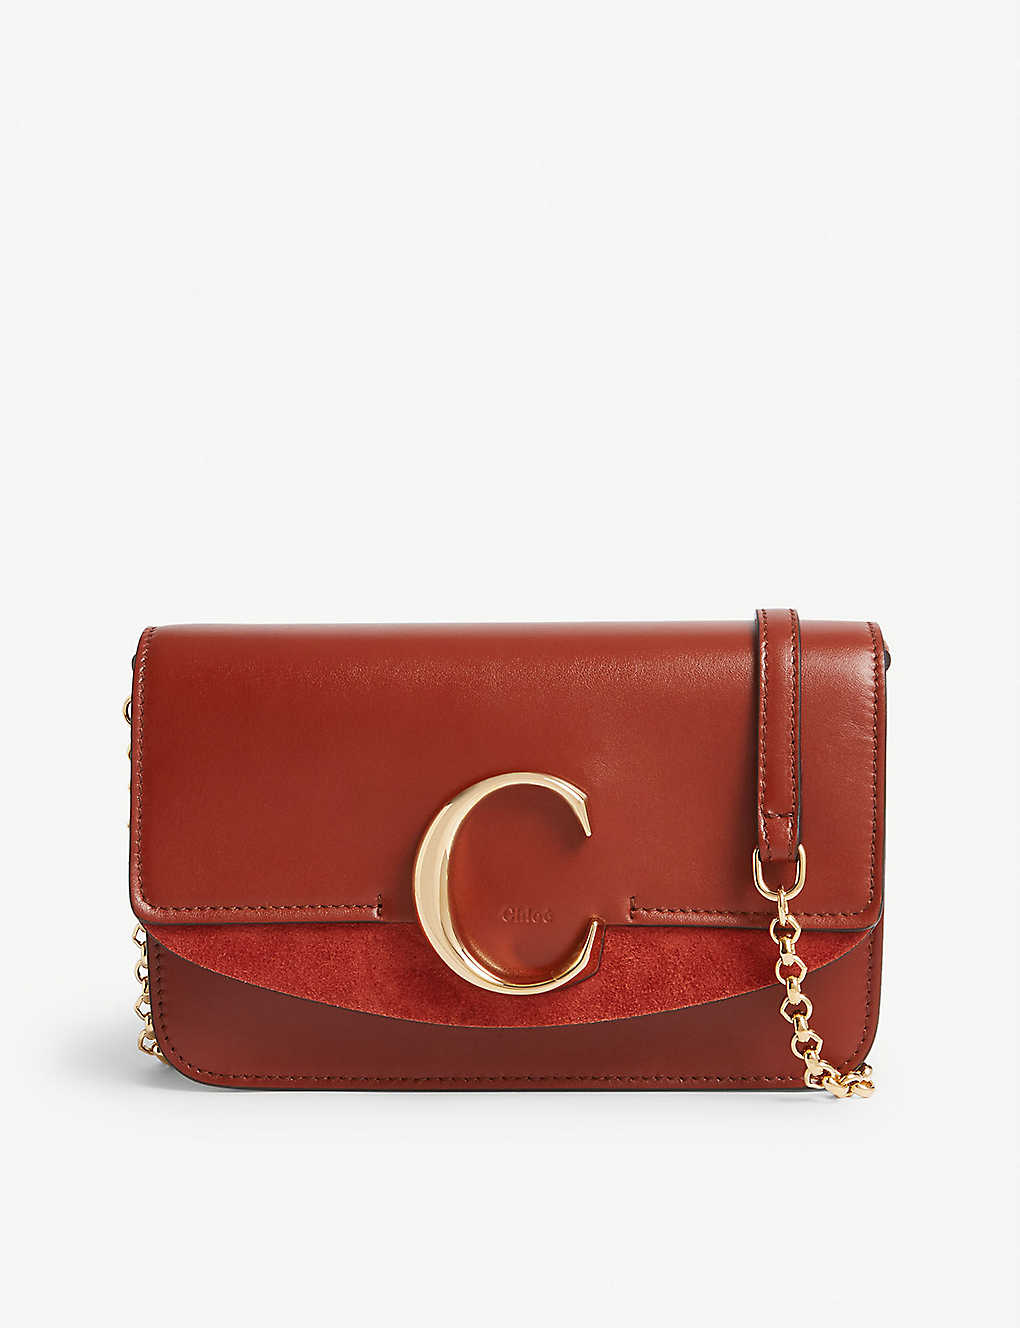 CHLOE: Chloé C leather and suede cross-body bag